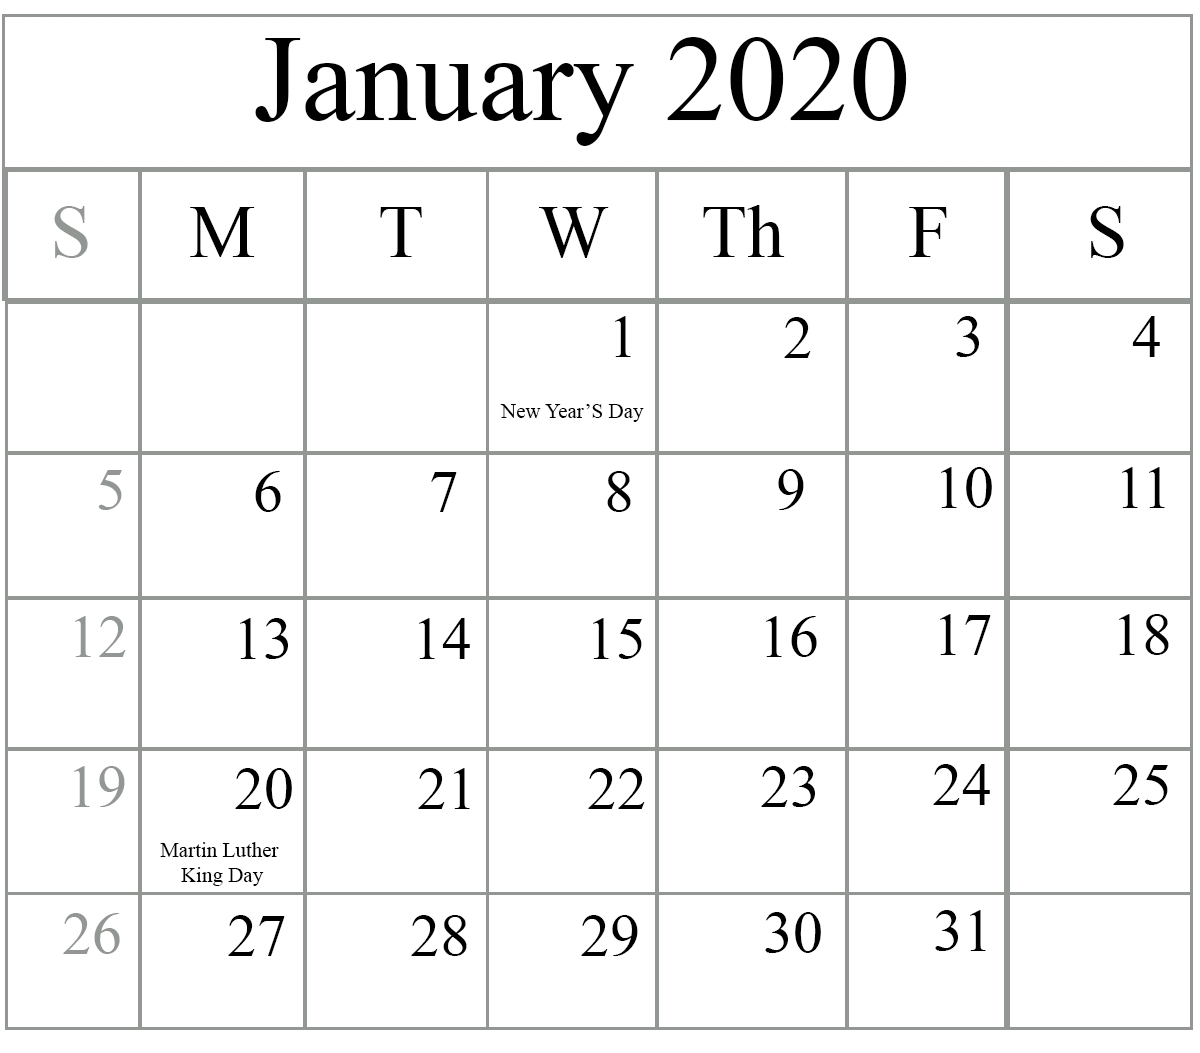 Free January 2020 Printable Calendar In Pdf, Excel & Word with 2020 Free Printable Calendars Without Downloading